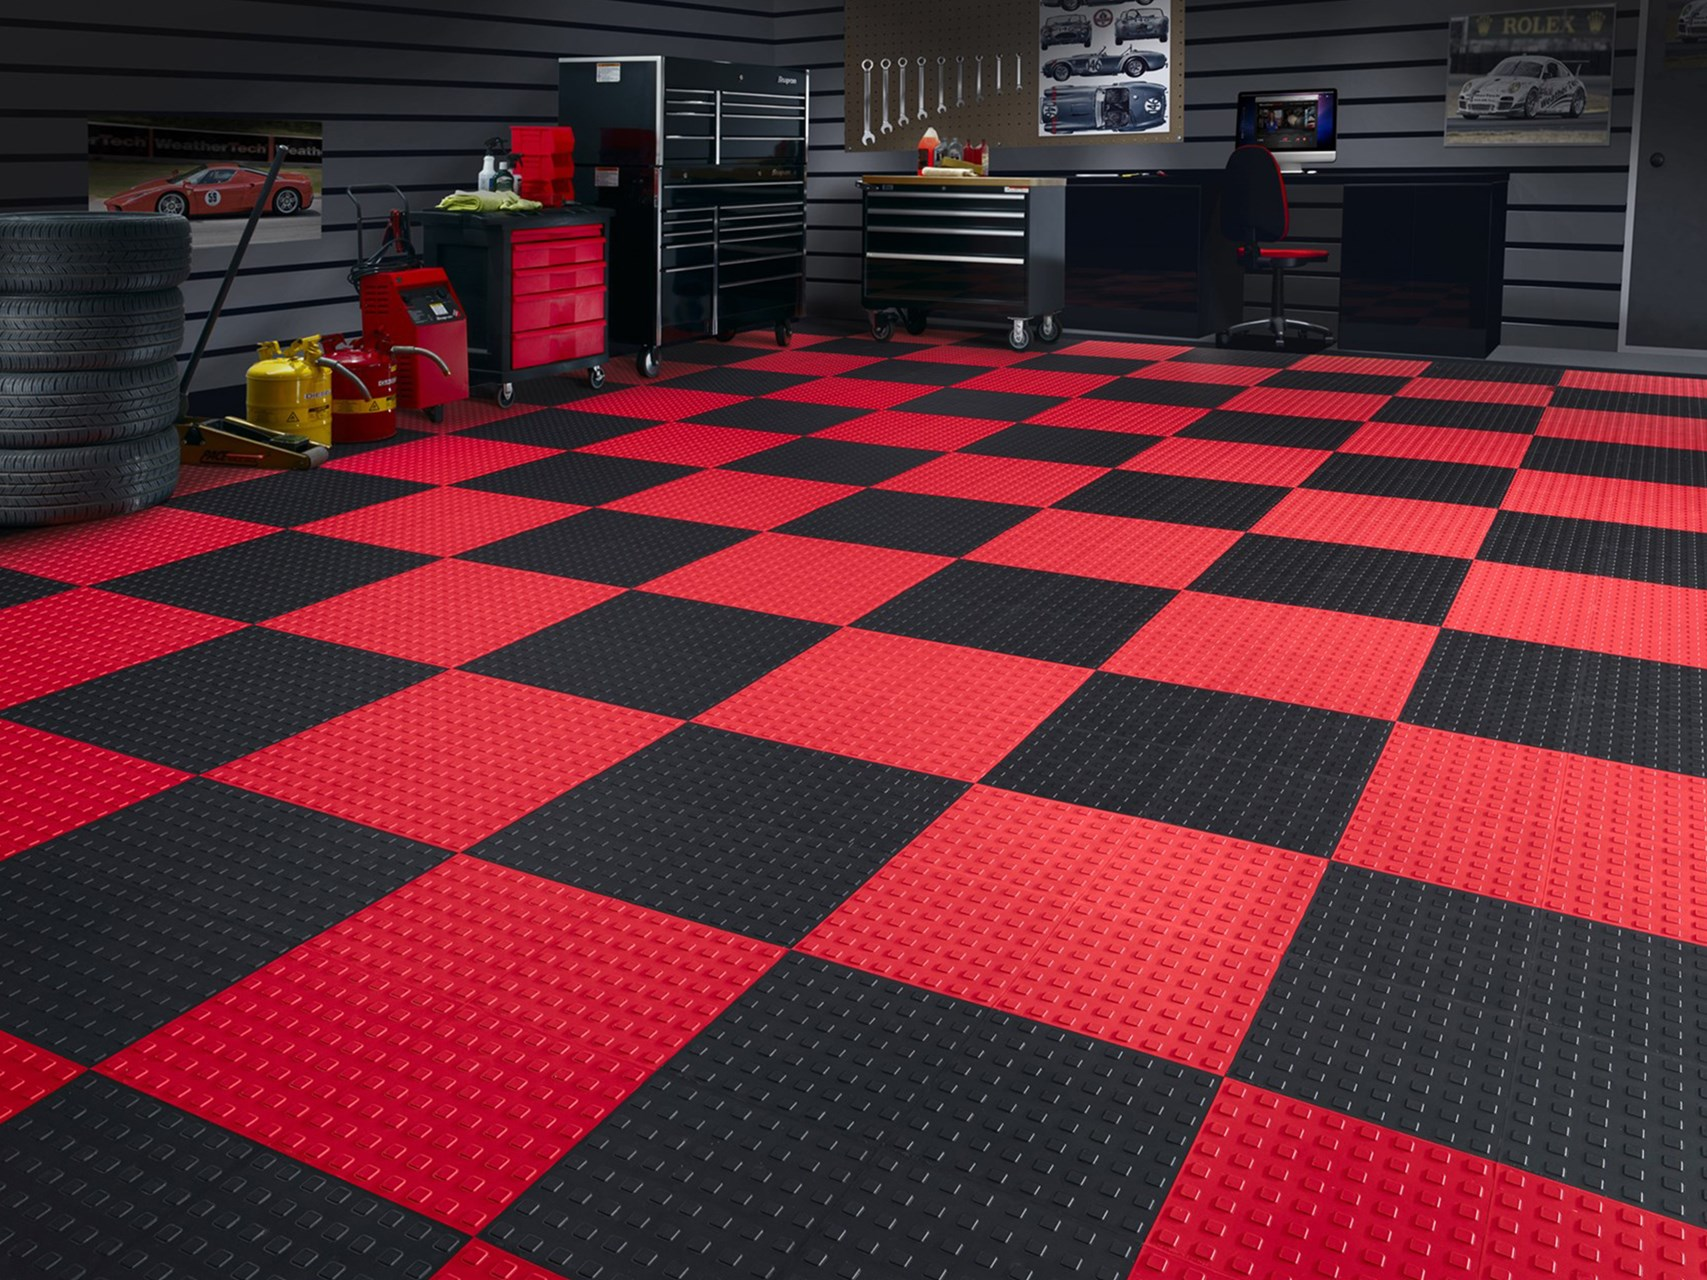 corvette tiles pin deck cheap diamond garage forum floor products interlocking deckplate race flooring pinteres